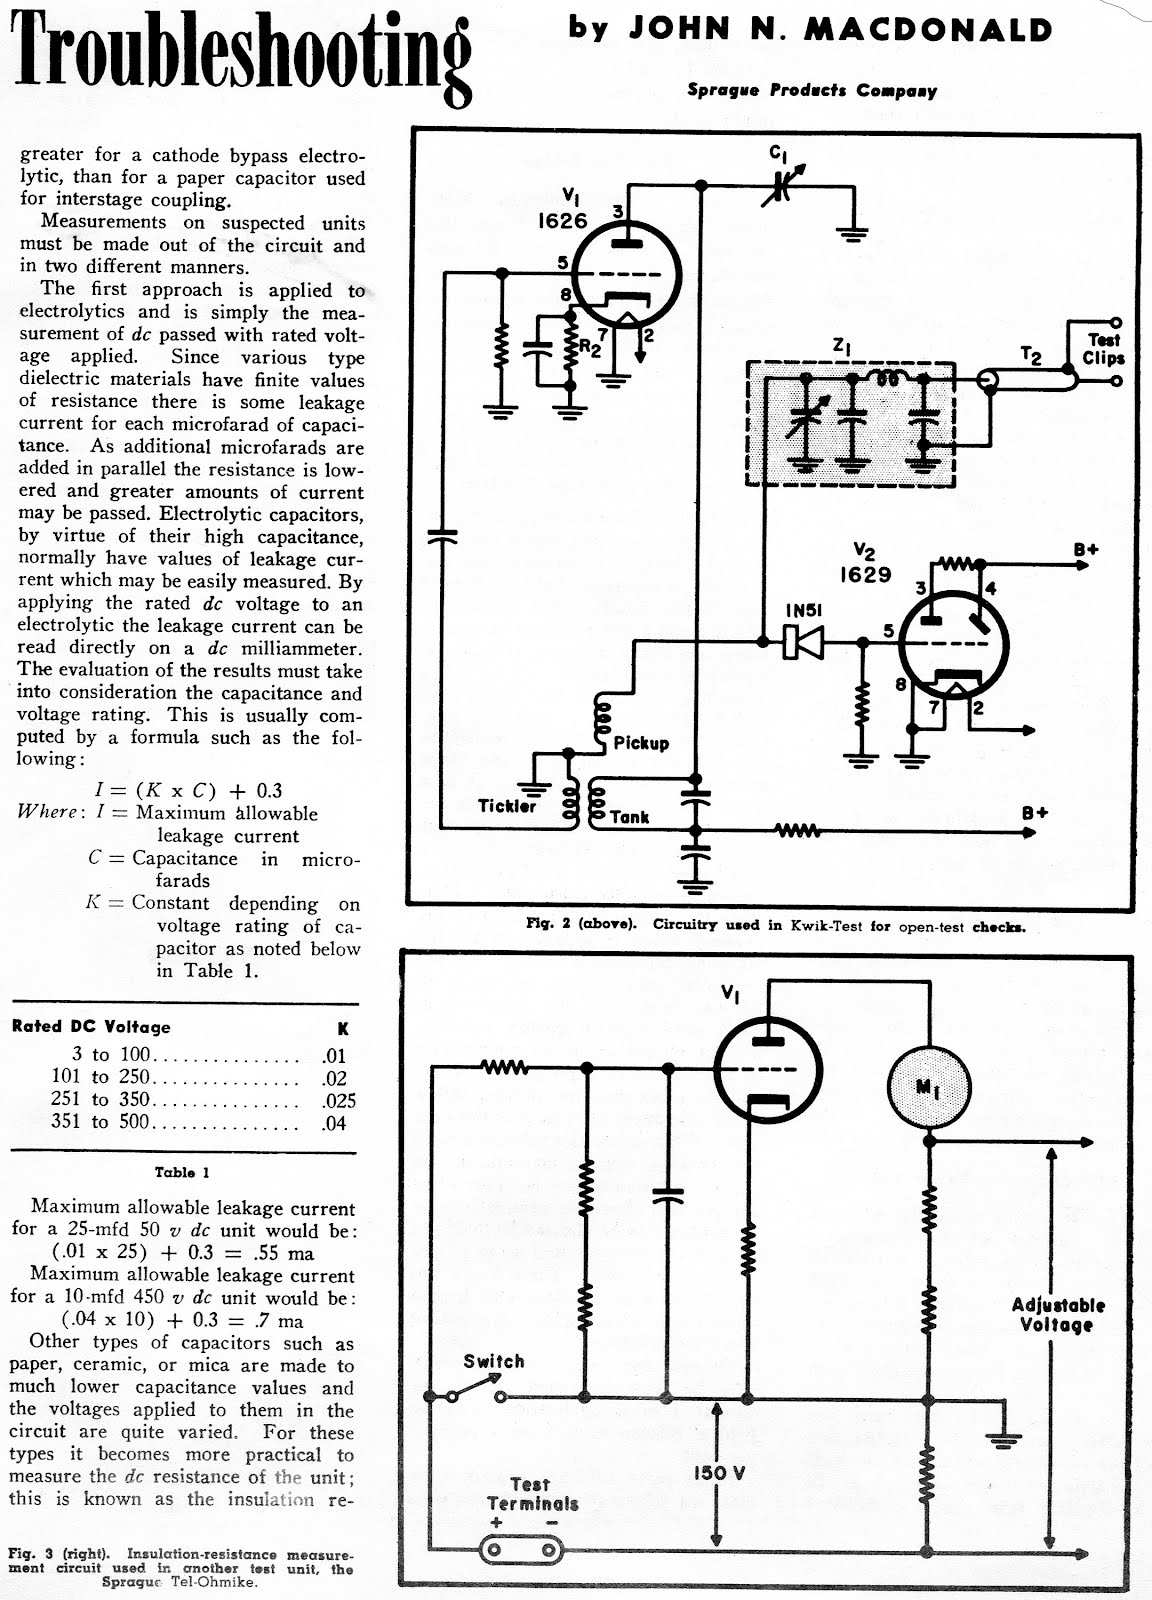 Judybox Revival Capacitor Troubleshooting